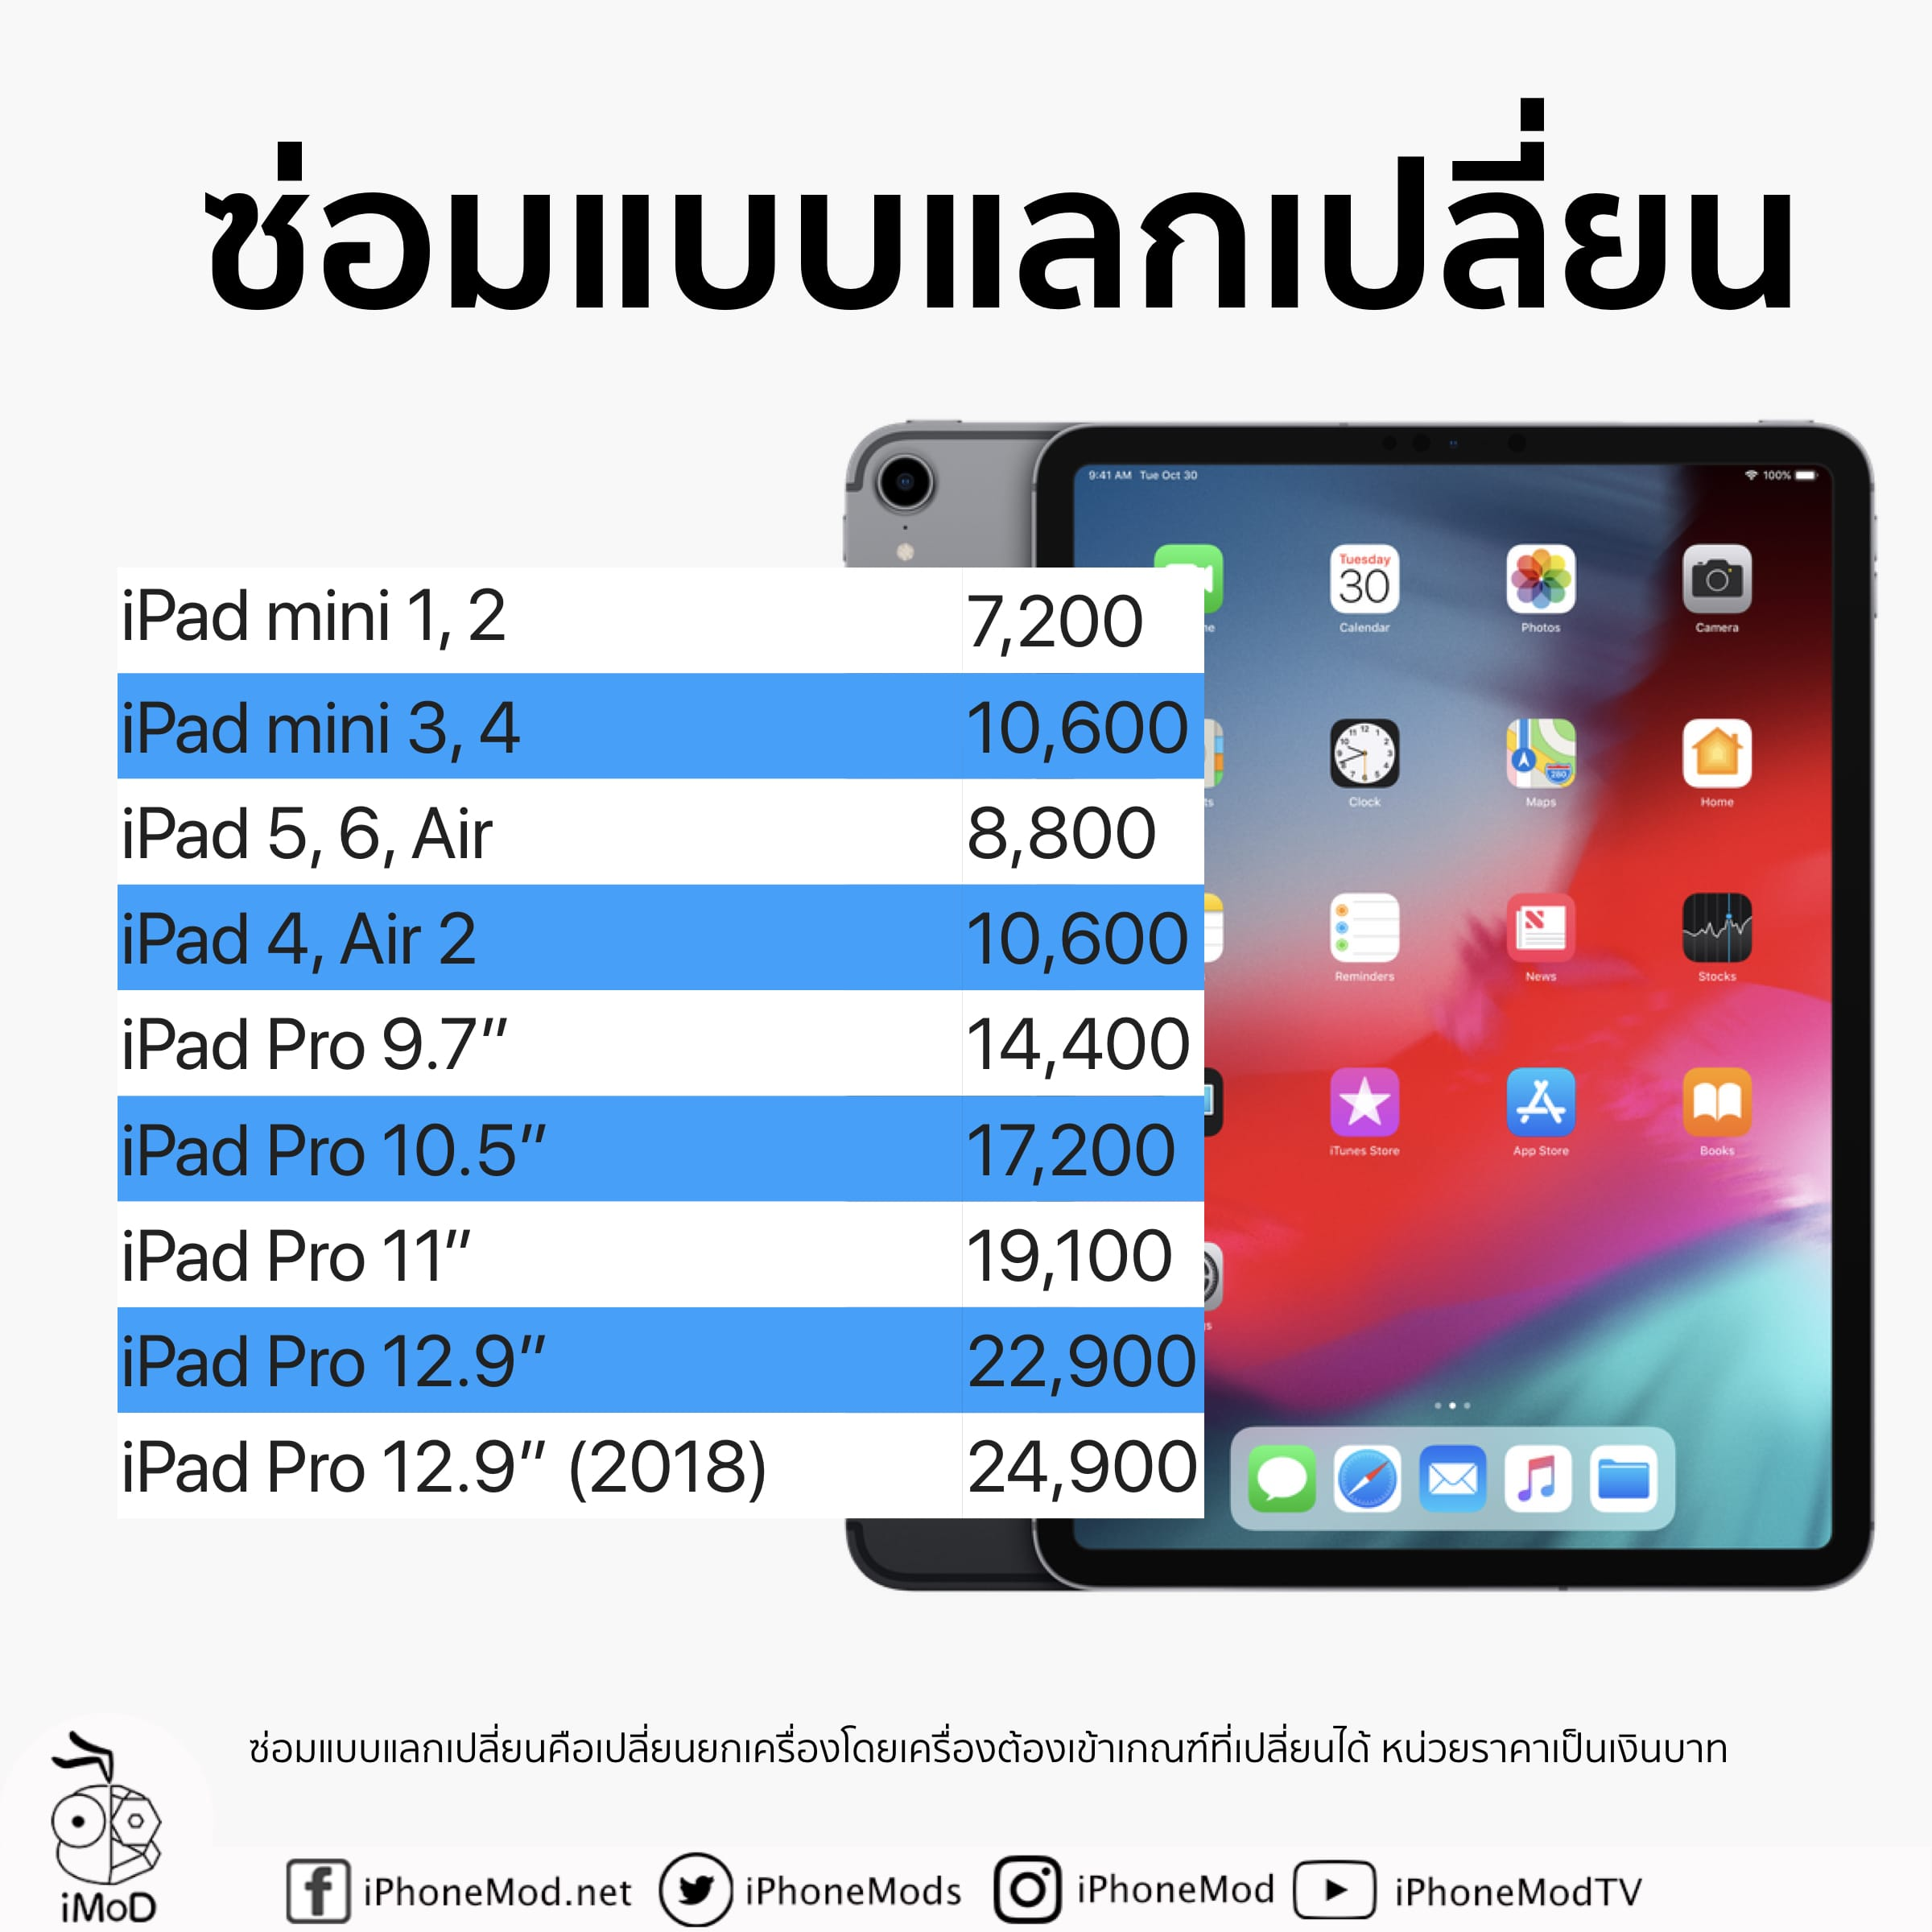 Aasp Thai Price Nov 2018 3